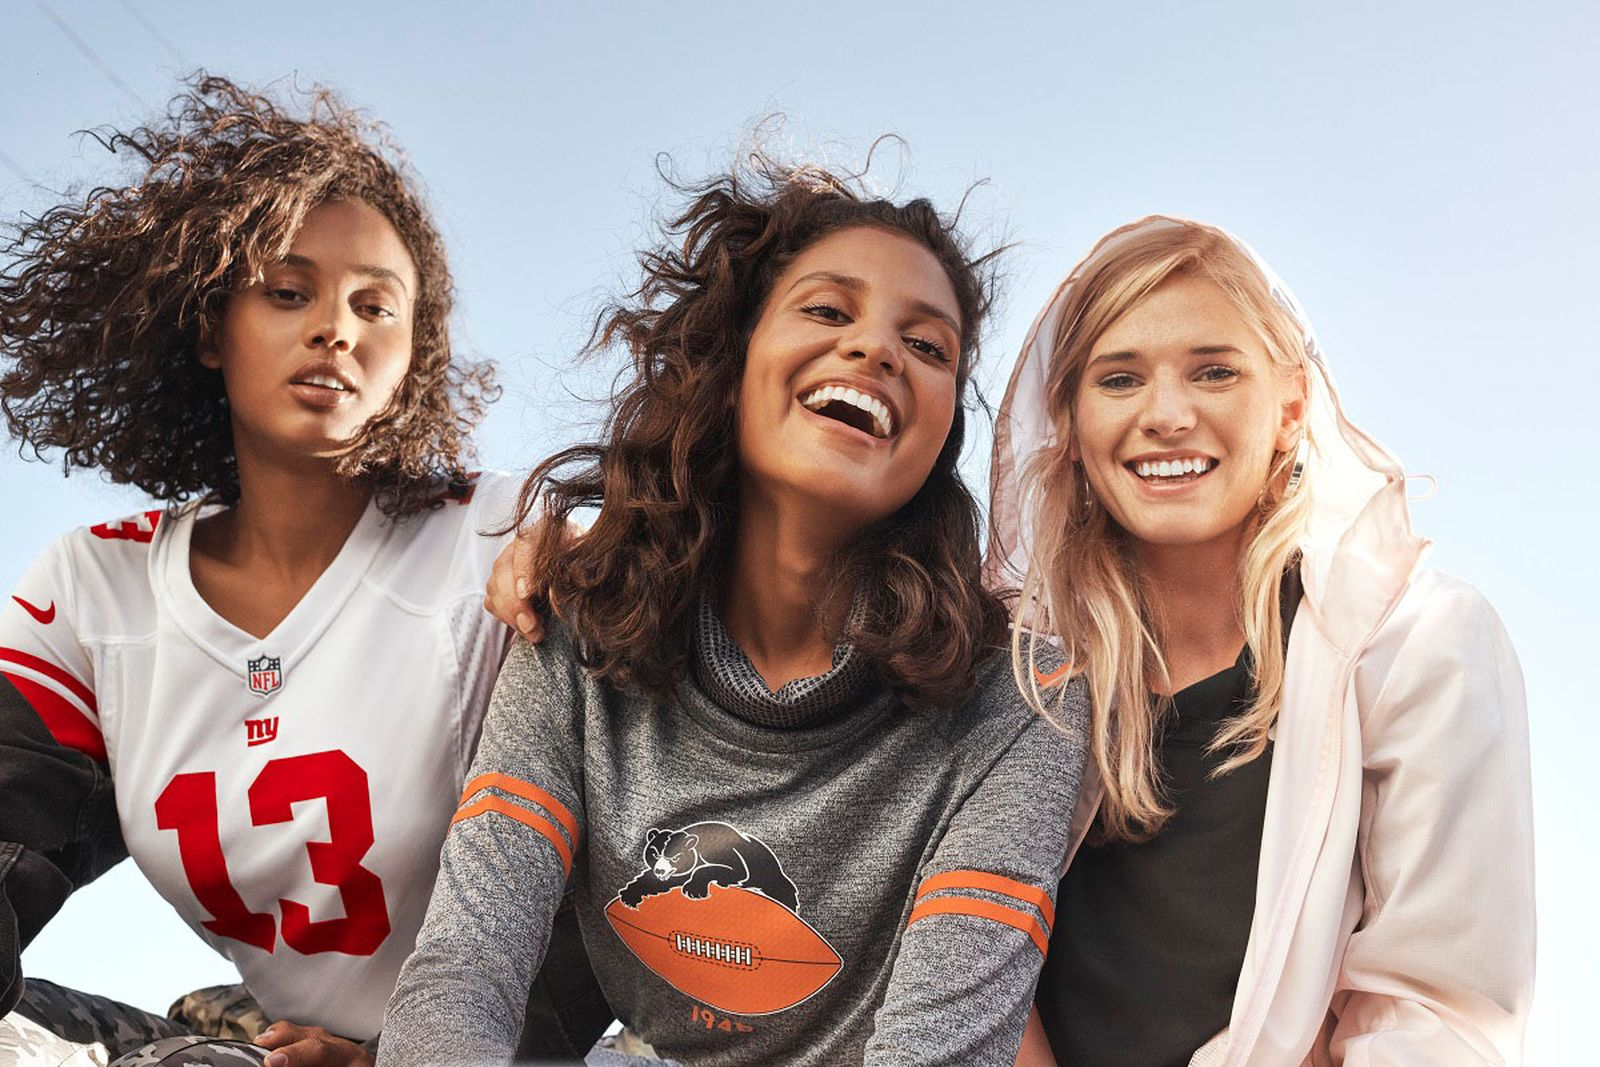 Nike is honoring NFL's female fans with a Football Jersey Line